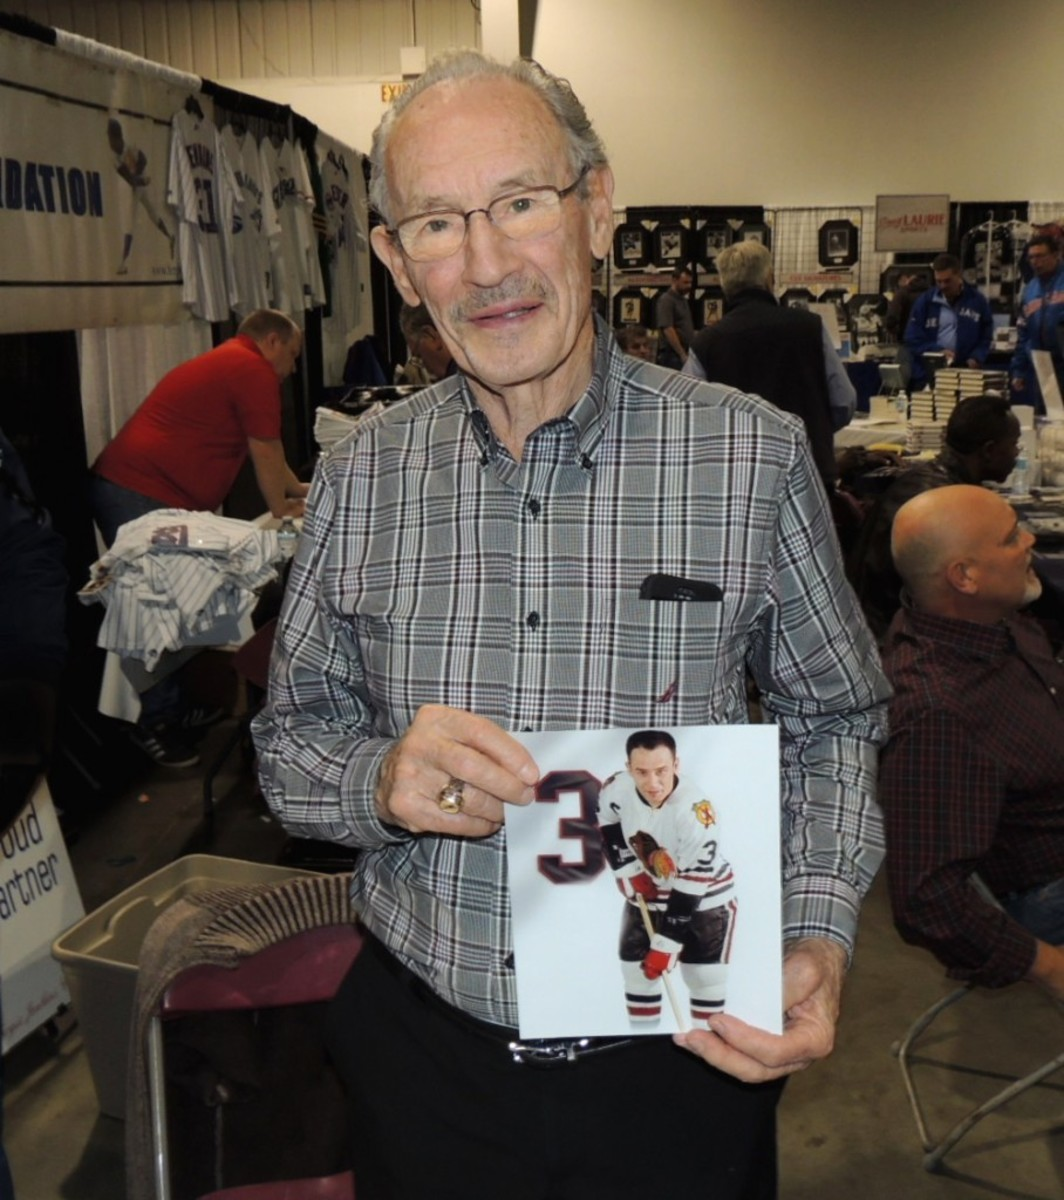 Pierre Pilote, 84, played 14 seasons with the Chicago Blackhawks before ending his career with the Toronto Maple Leafs (1968-69). He was elected into the Hockey Hall of Fame in 1975. All photos by Hank Davis.